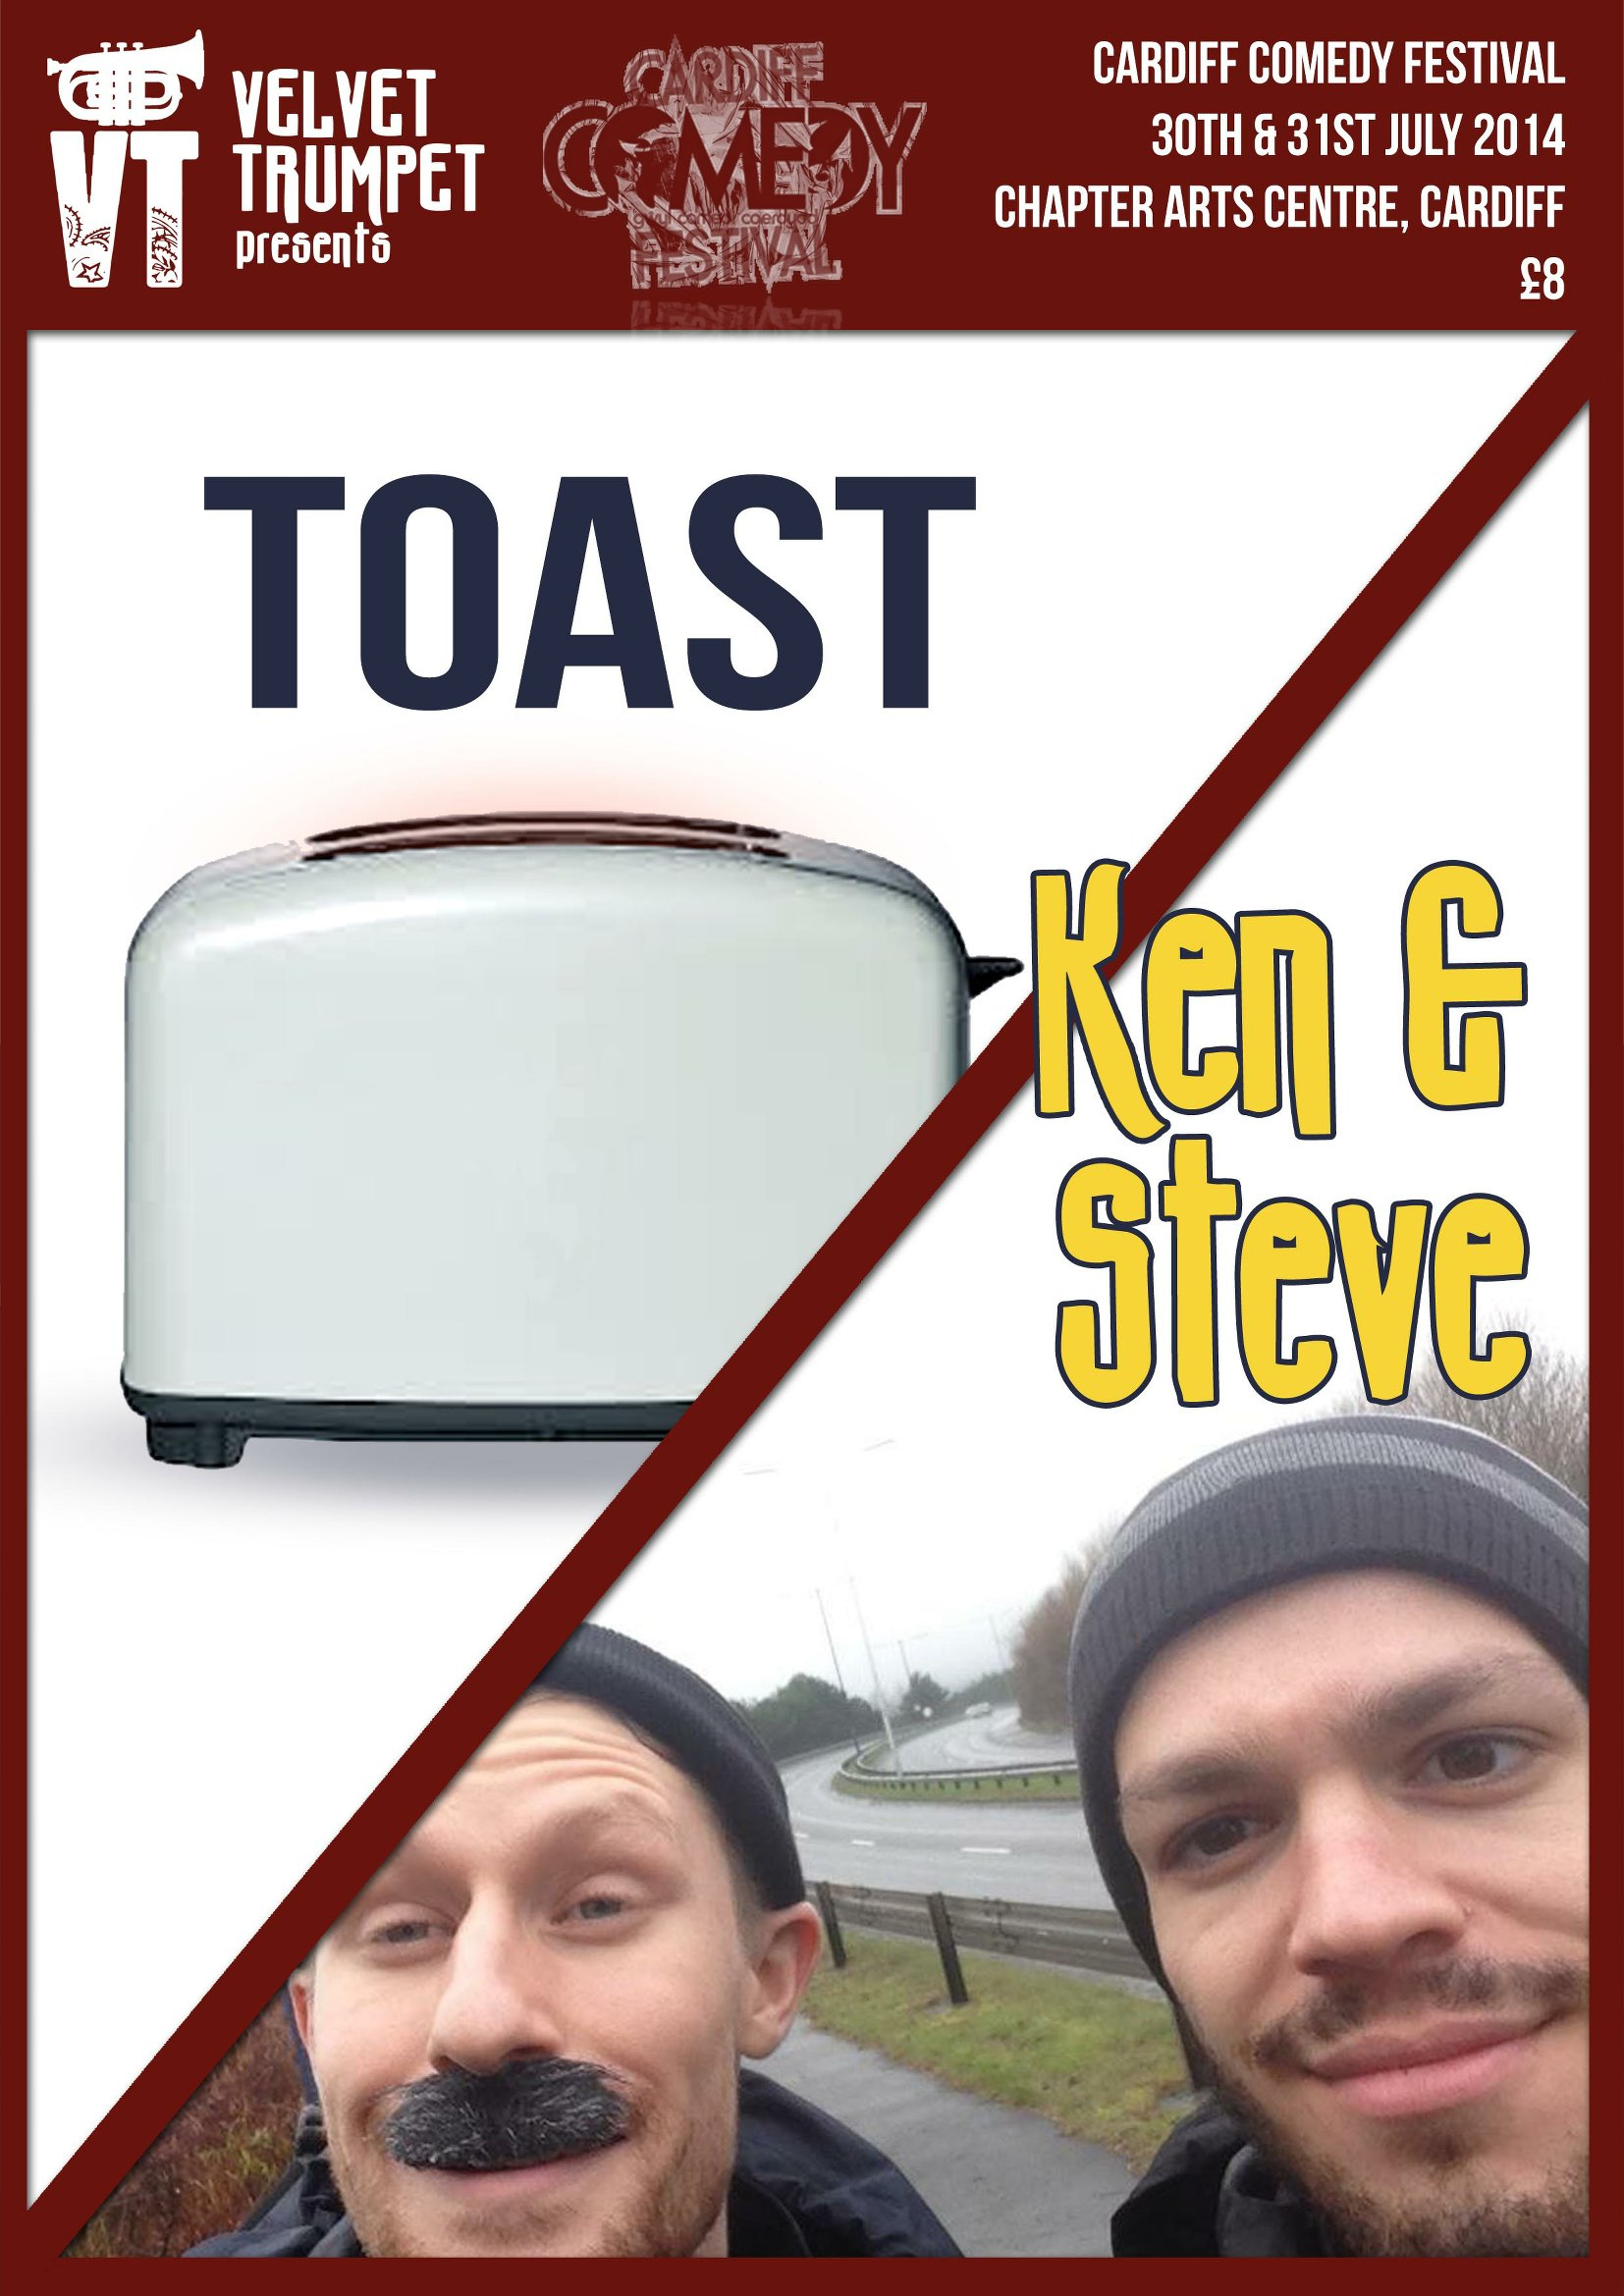 30th-31st-july-toast